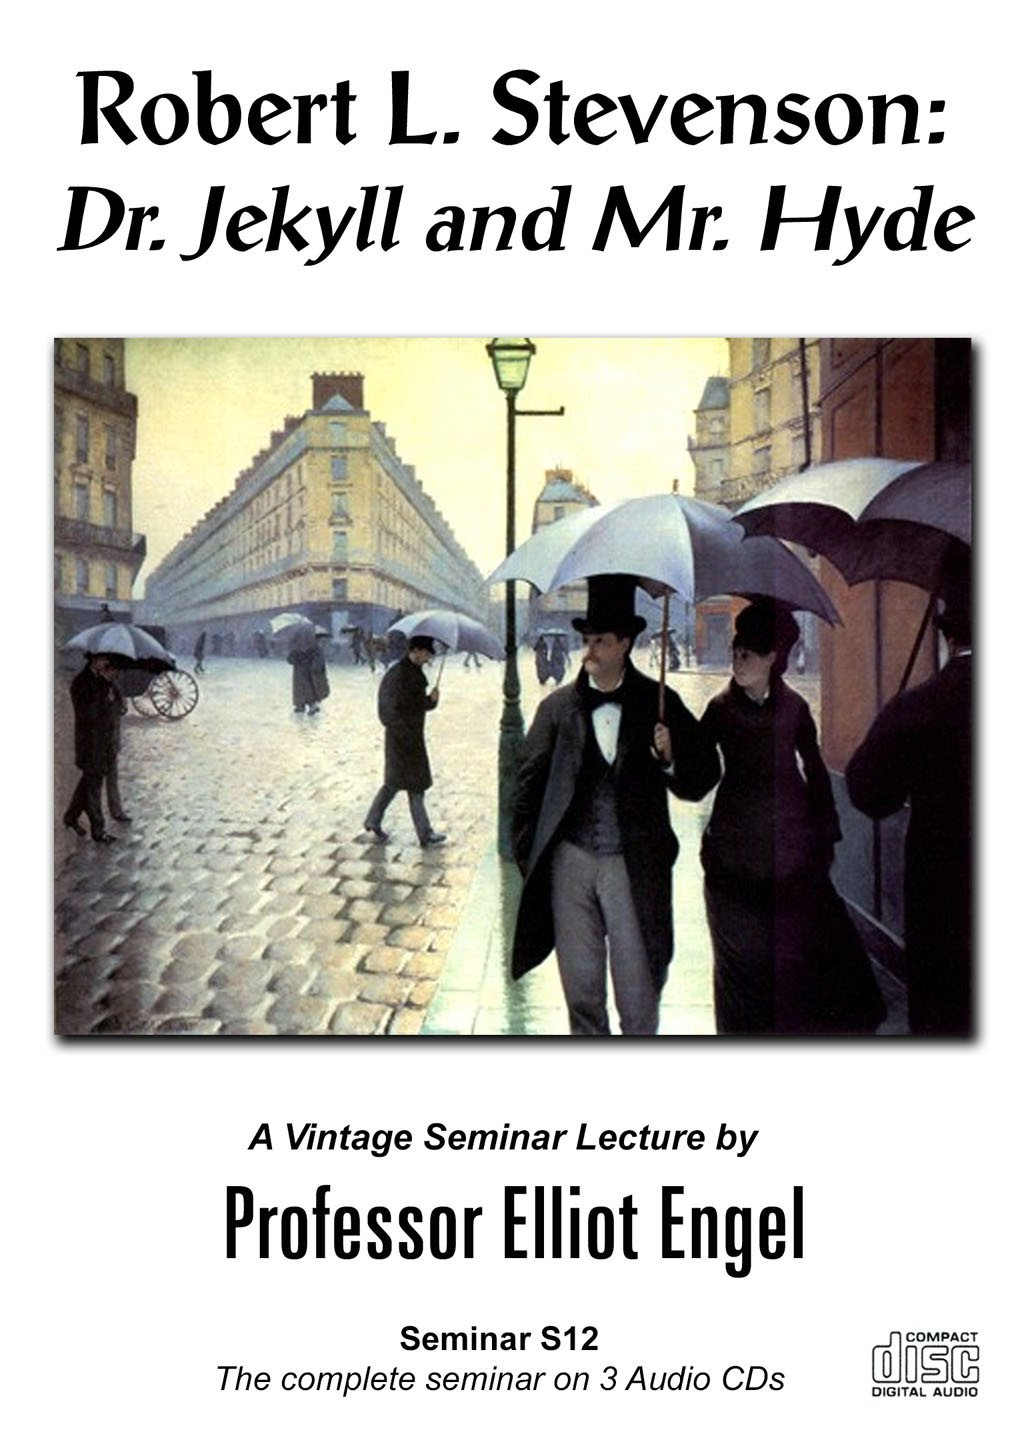 Robert Louis Stevenson: Dr. Jekyll and Mr. Hyde